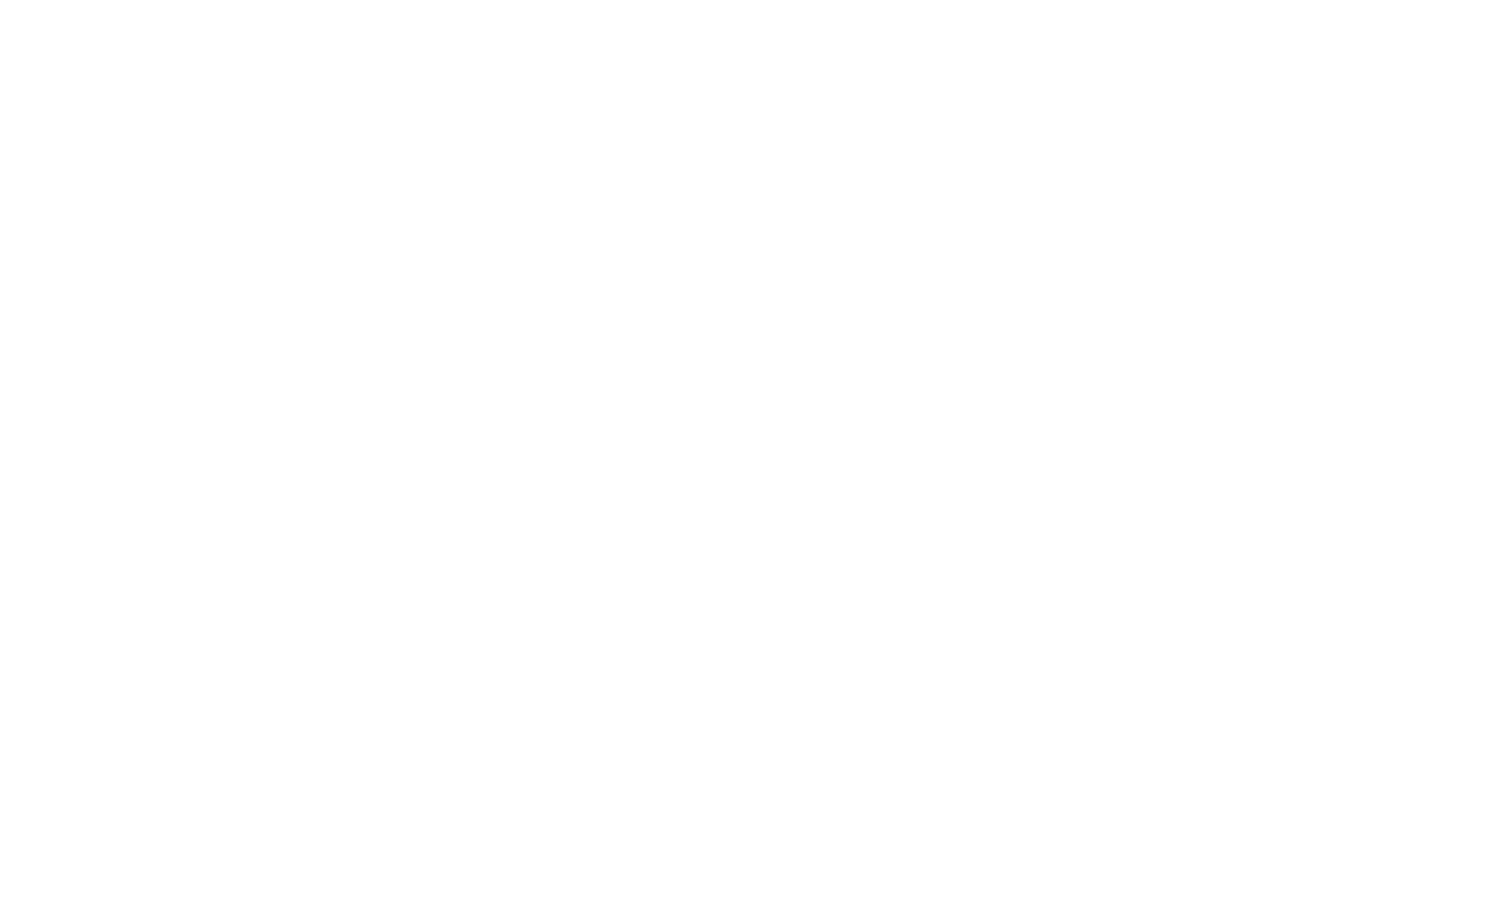 Hot Baby Octopus Amplification